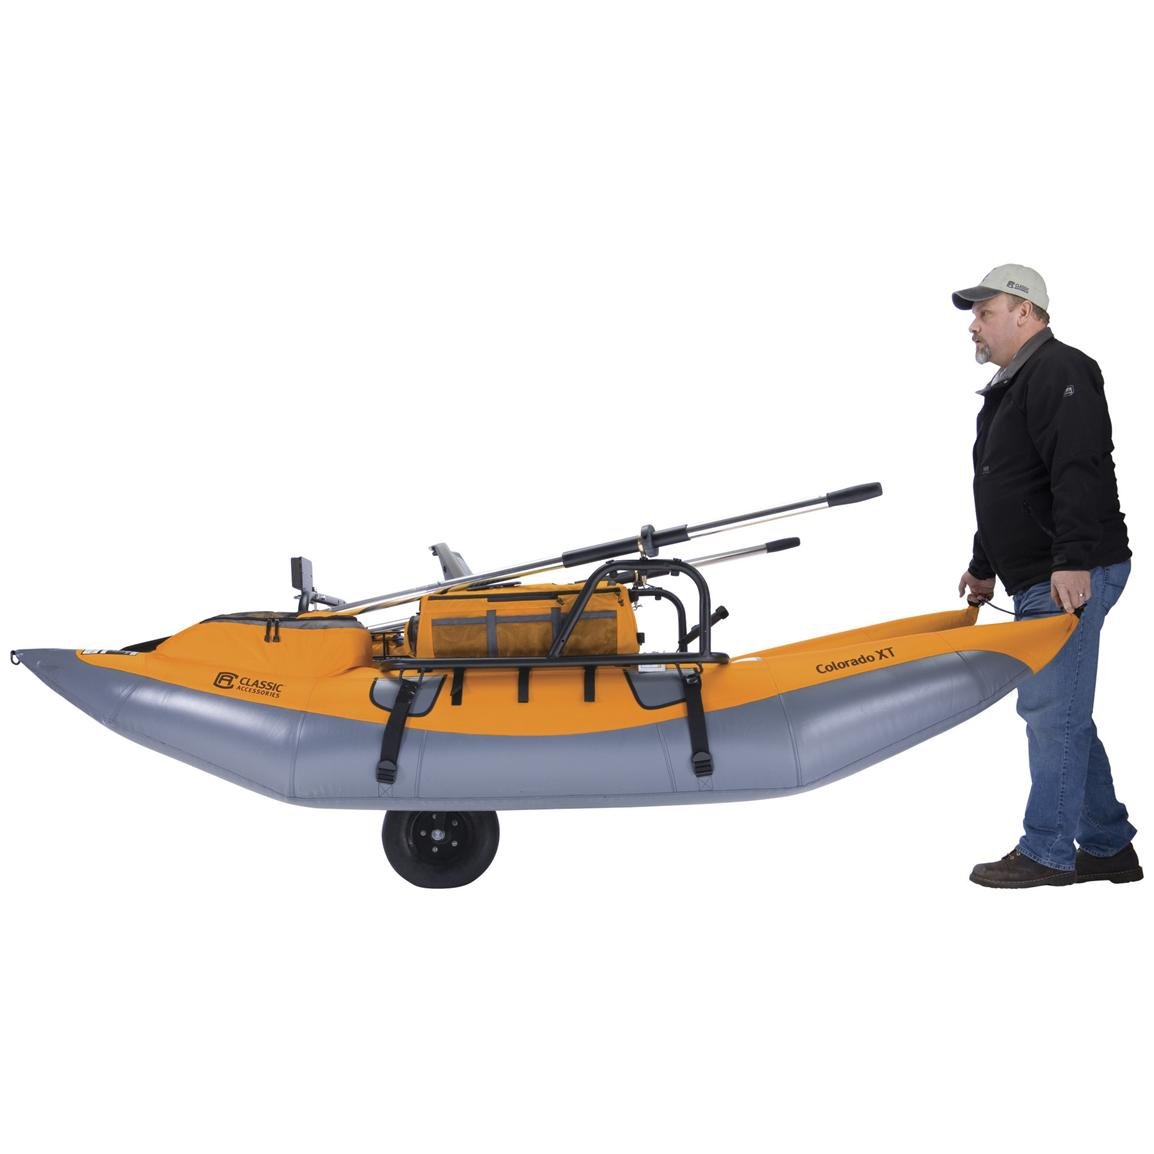 Integrated transport wheel stows up when fishing